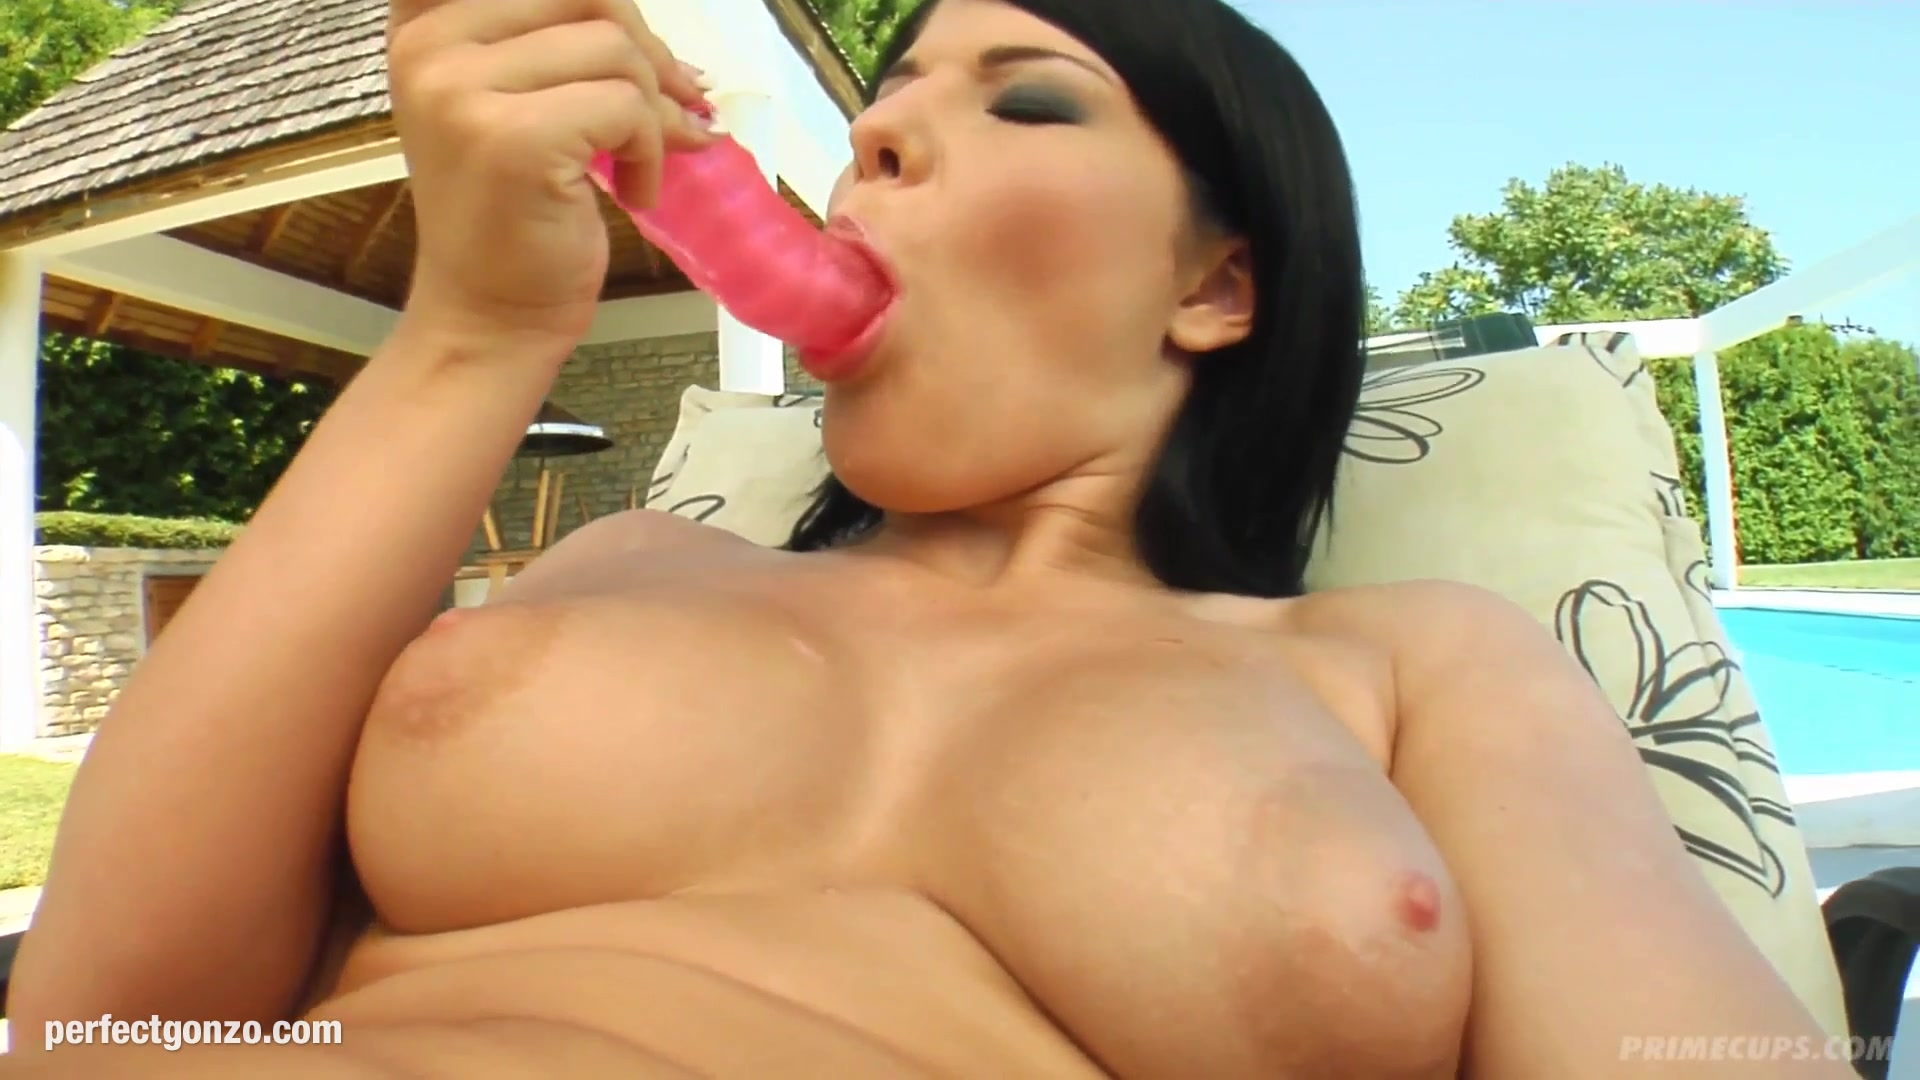 Hot xXx Video Brother Step Sister Kitchen Sex New